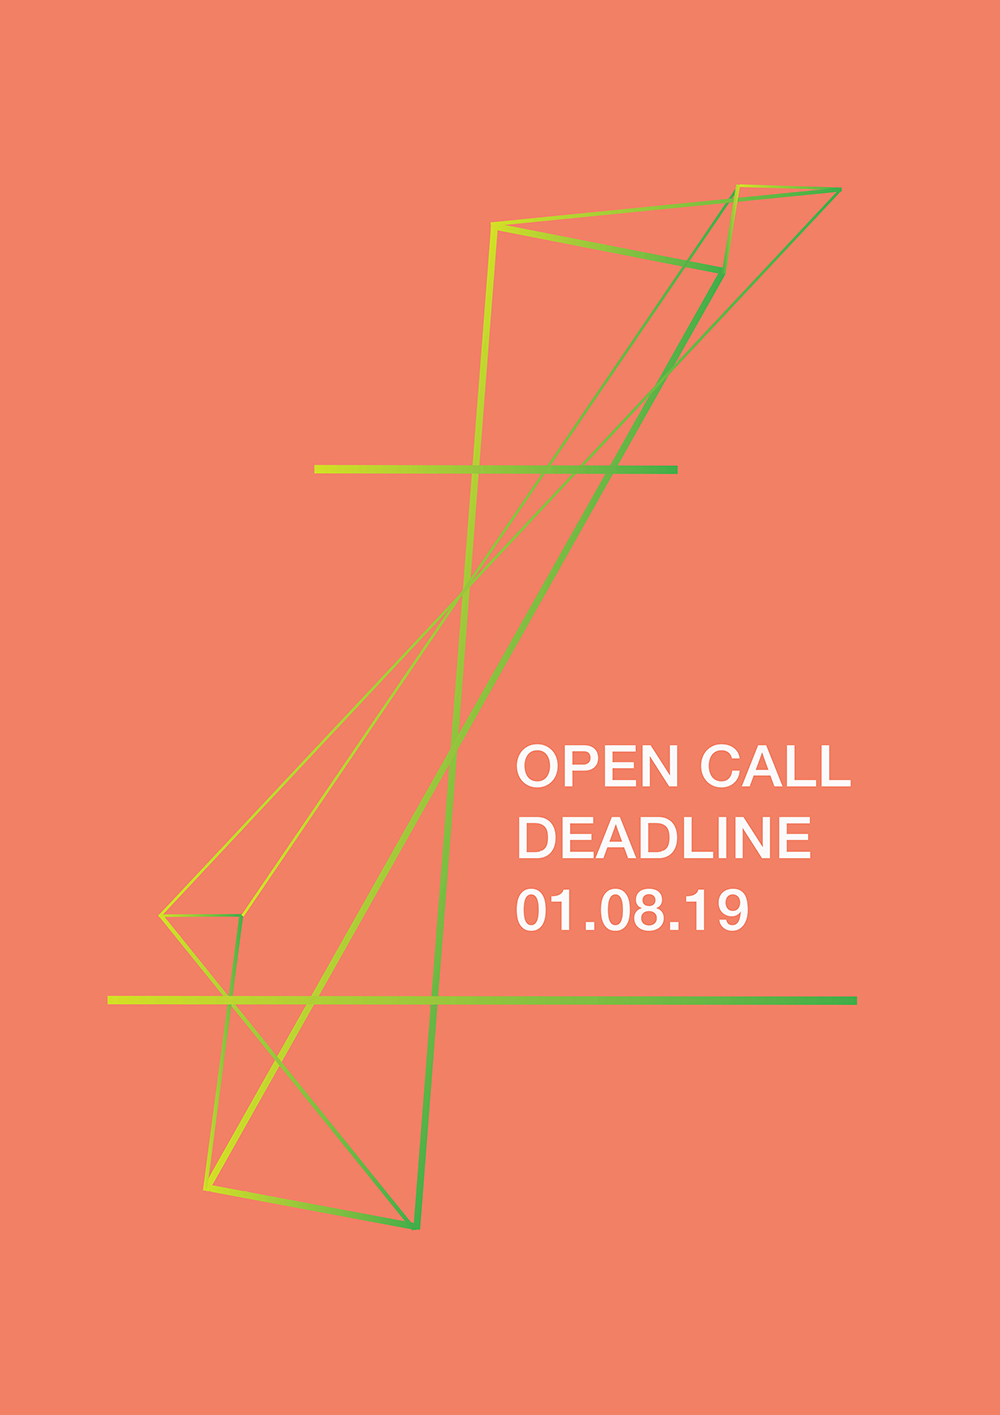 open call poster